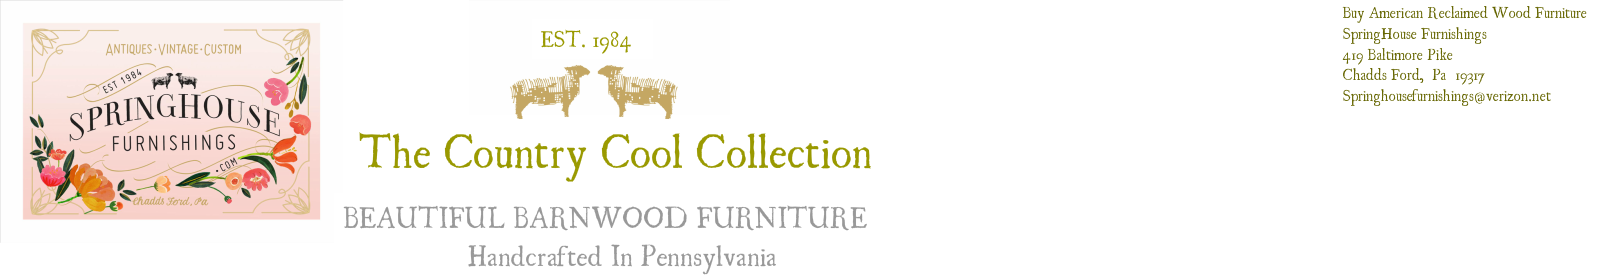 BEAUTIFUL BARNWOOD FURNITURE - Order Beautiful Handcrafted